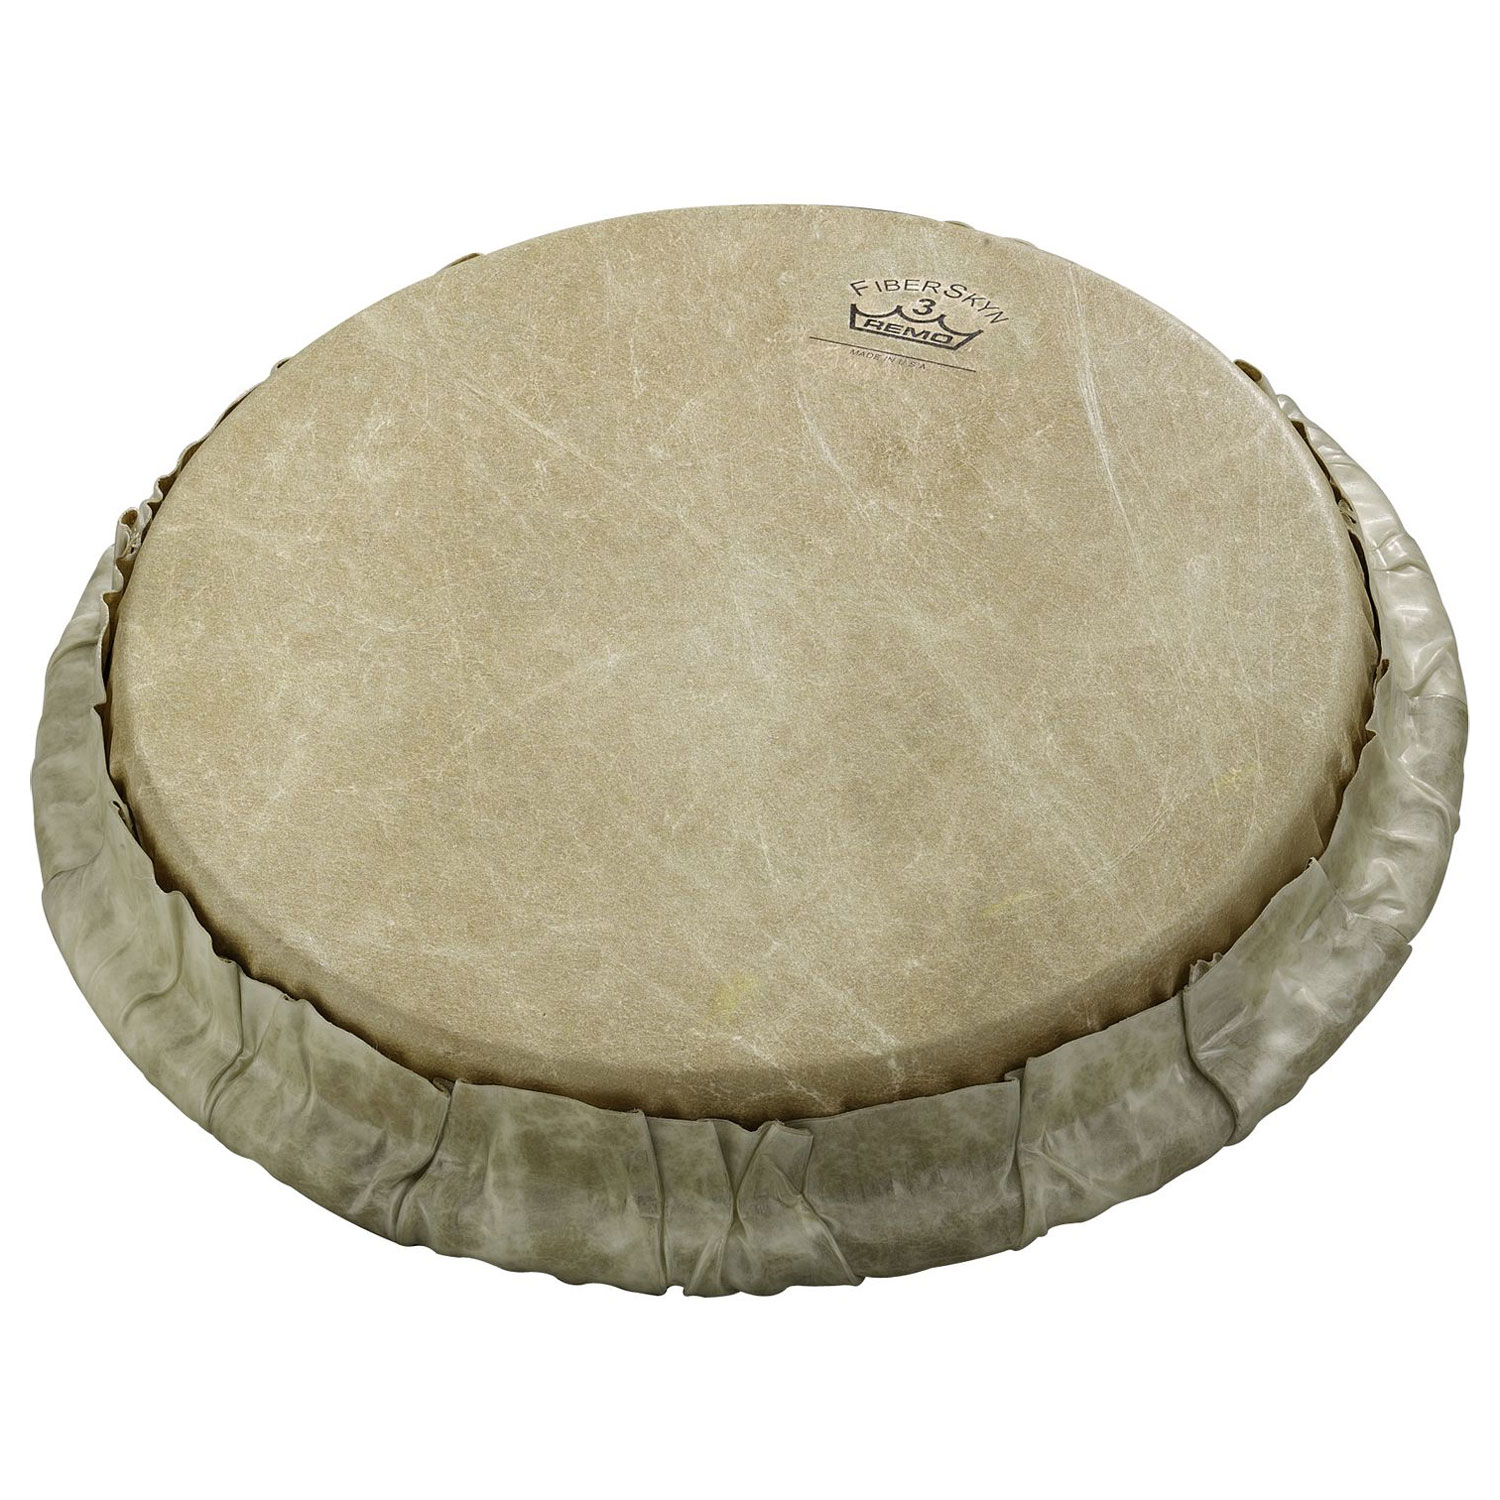 "Remo 7.15"" Tucked Fiberskyn Bongo Drum Head"